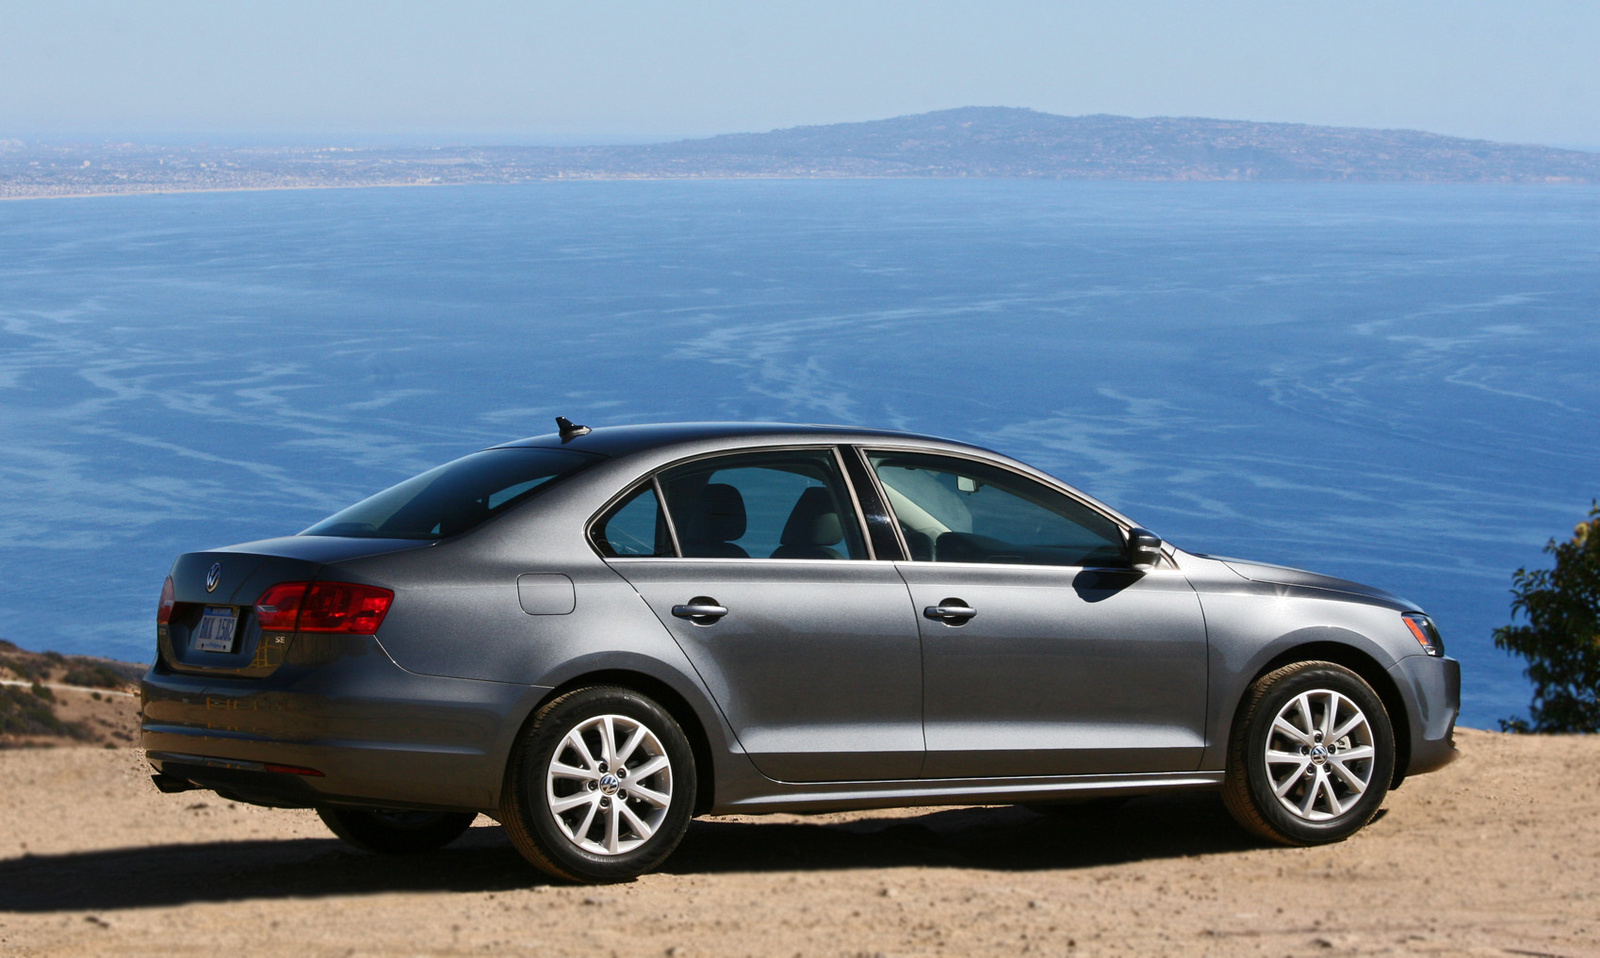 2014 Volkswagen Jetta Sedan rear passenger side